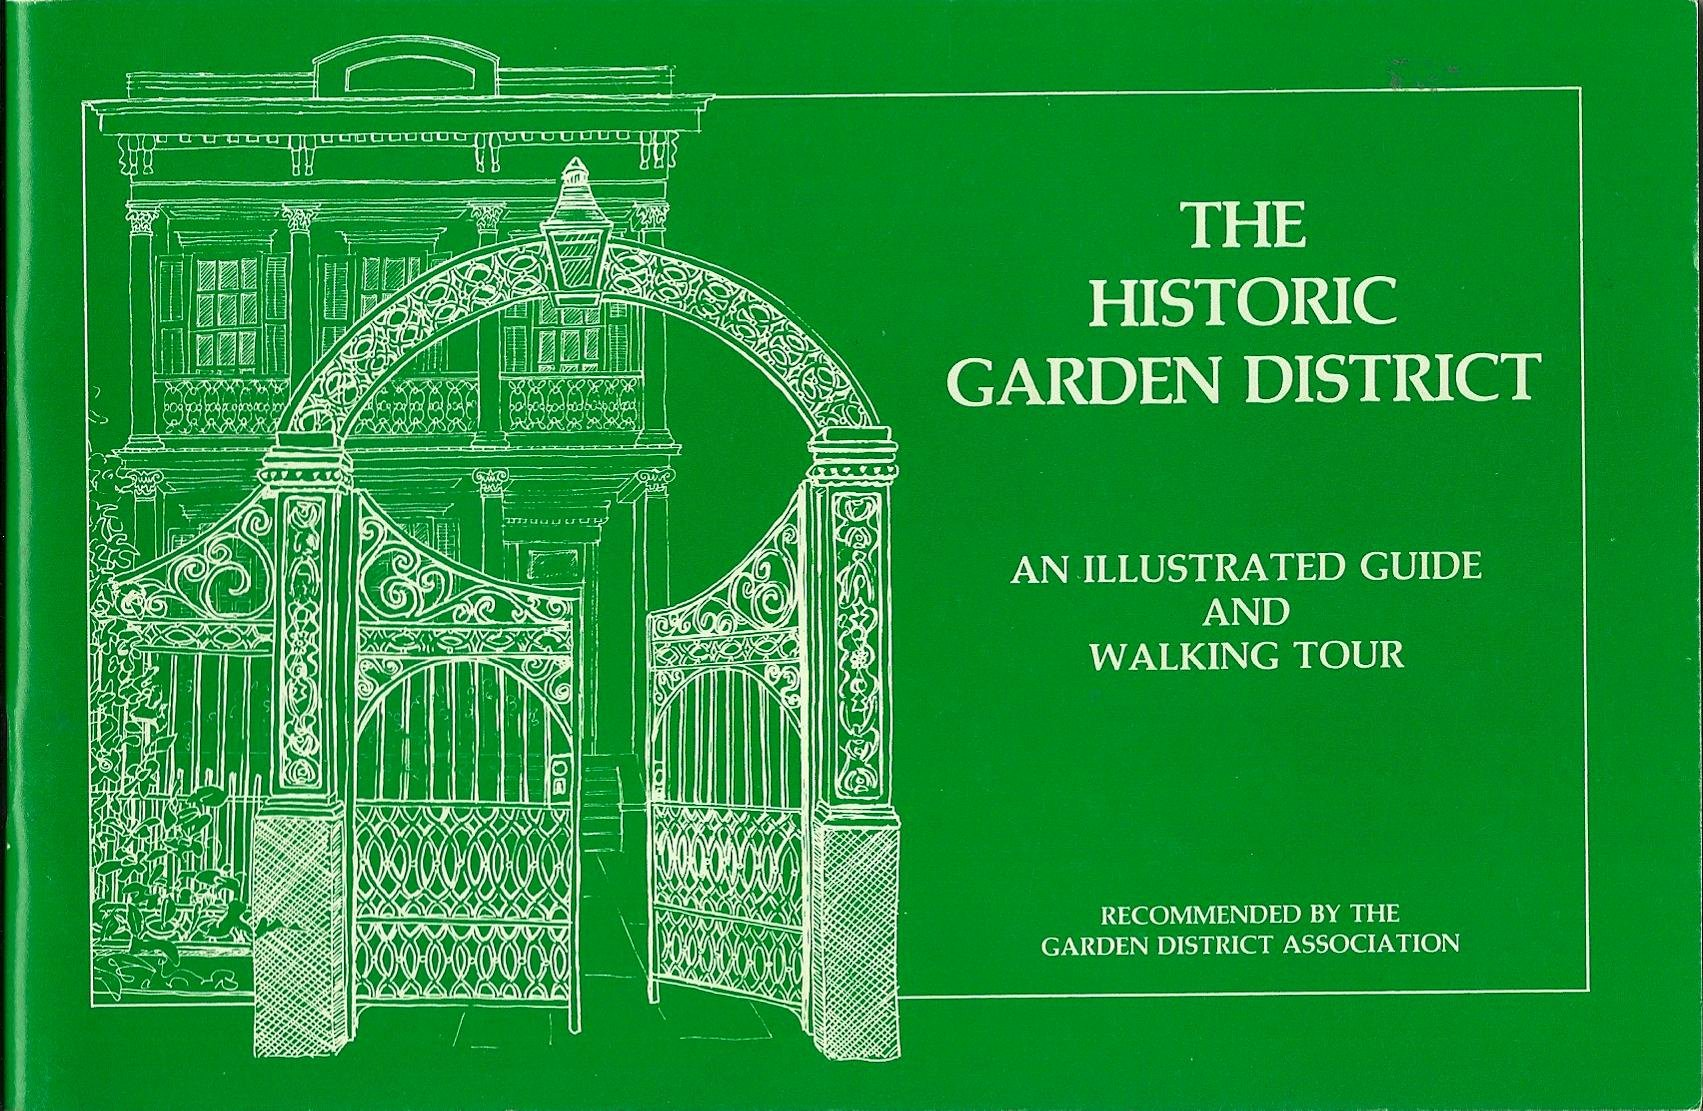 the historic garden district an illustrated guide and walking tour isabel and cindy schoenberger sanders amazoncom books - Garden District Walking Tour